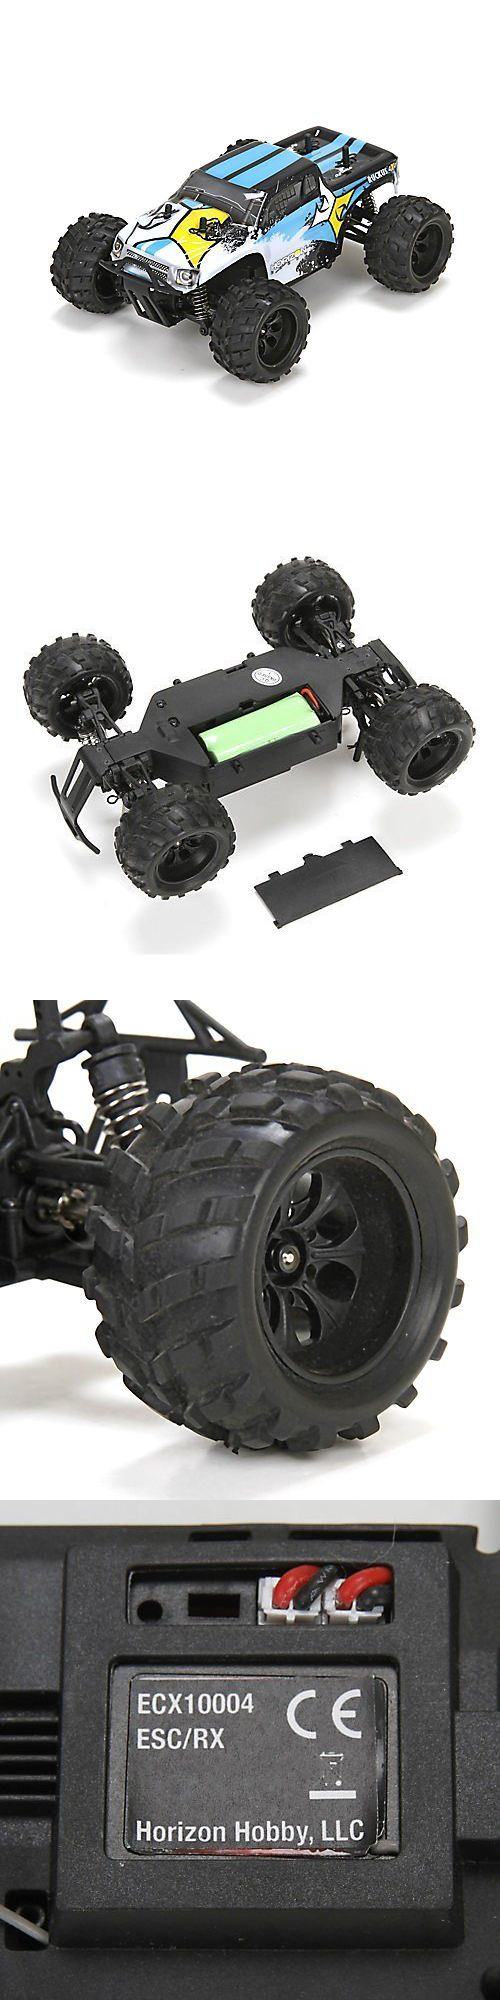 Tether cars 168247 ecx ruckus 1 24 4wd monster truck black white rtr